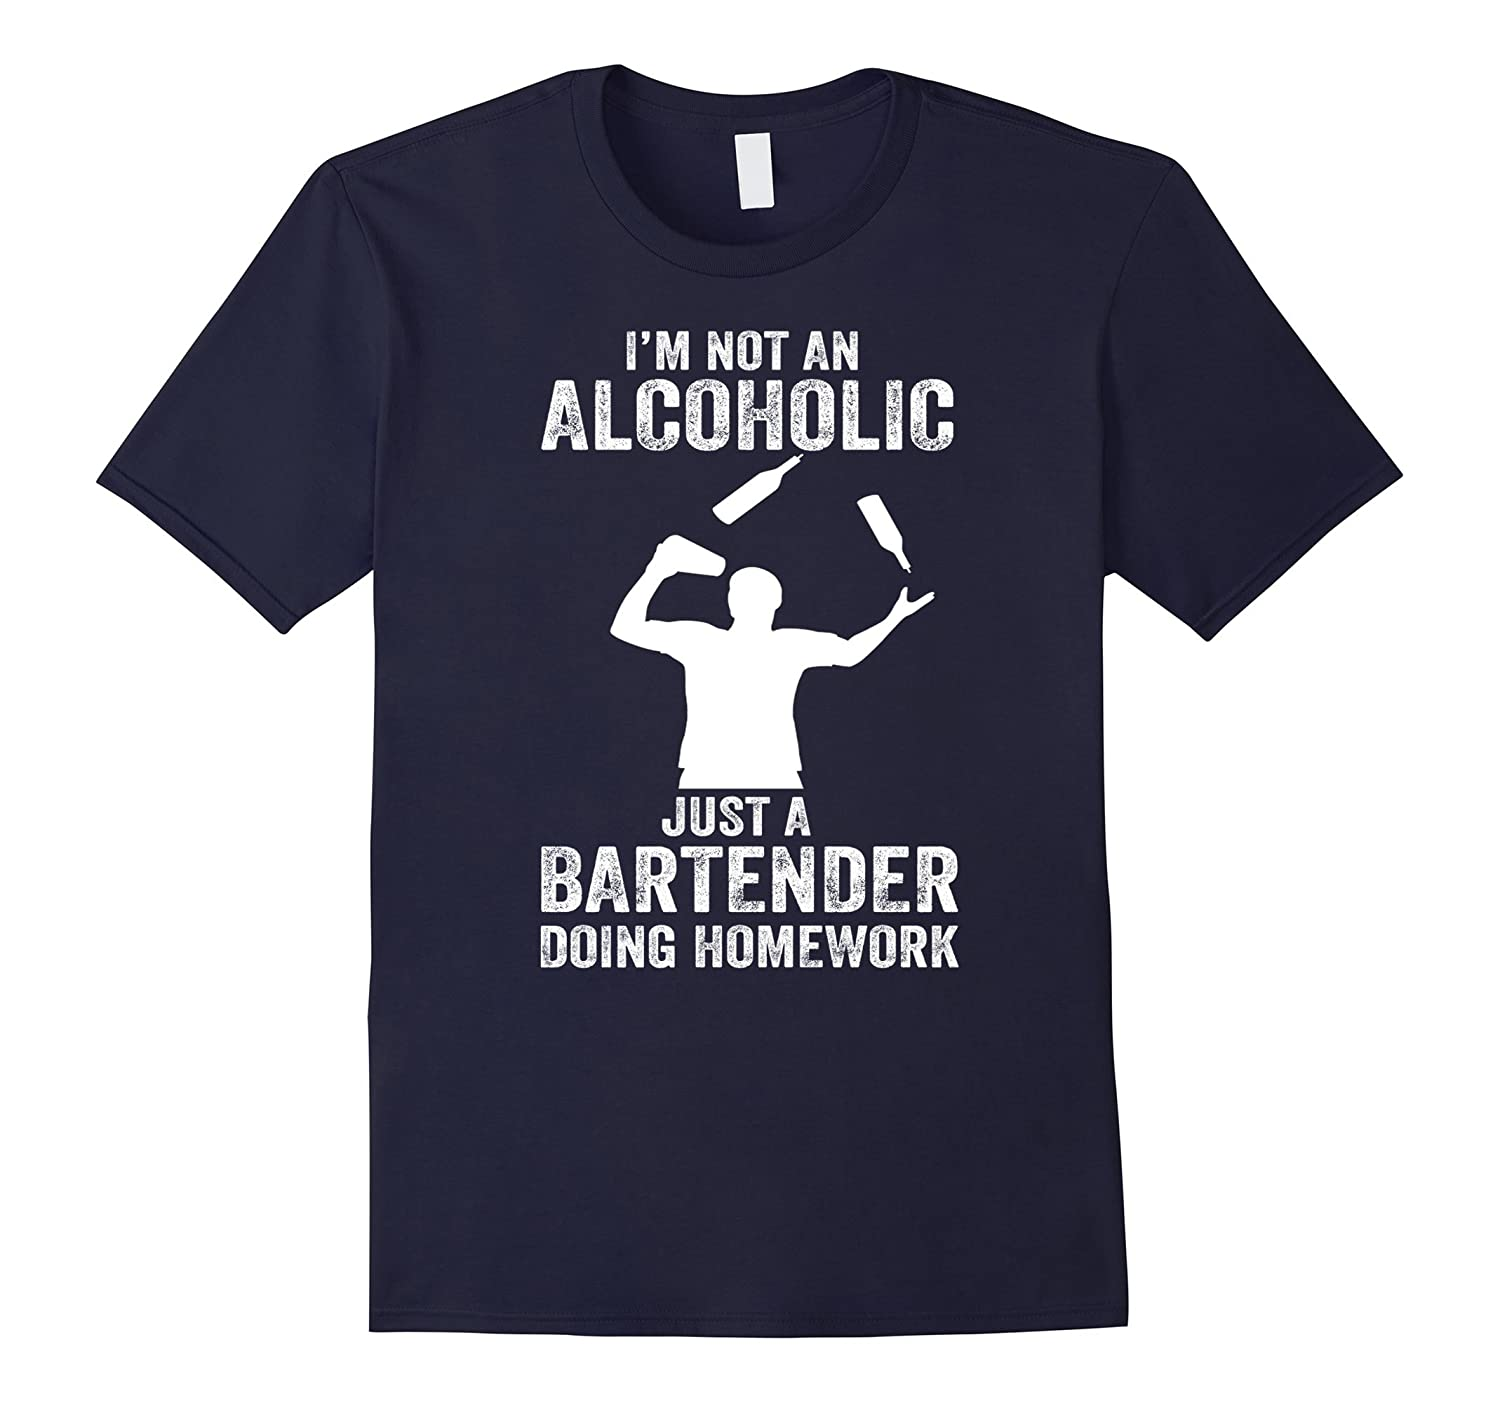 Bartender T-Shirt - I'm not an alcoholic, just a Bartender-CL